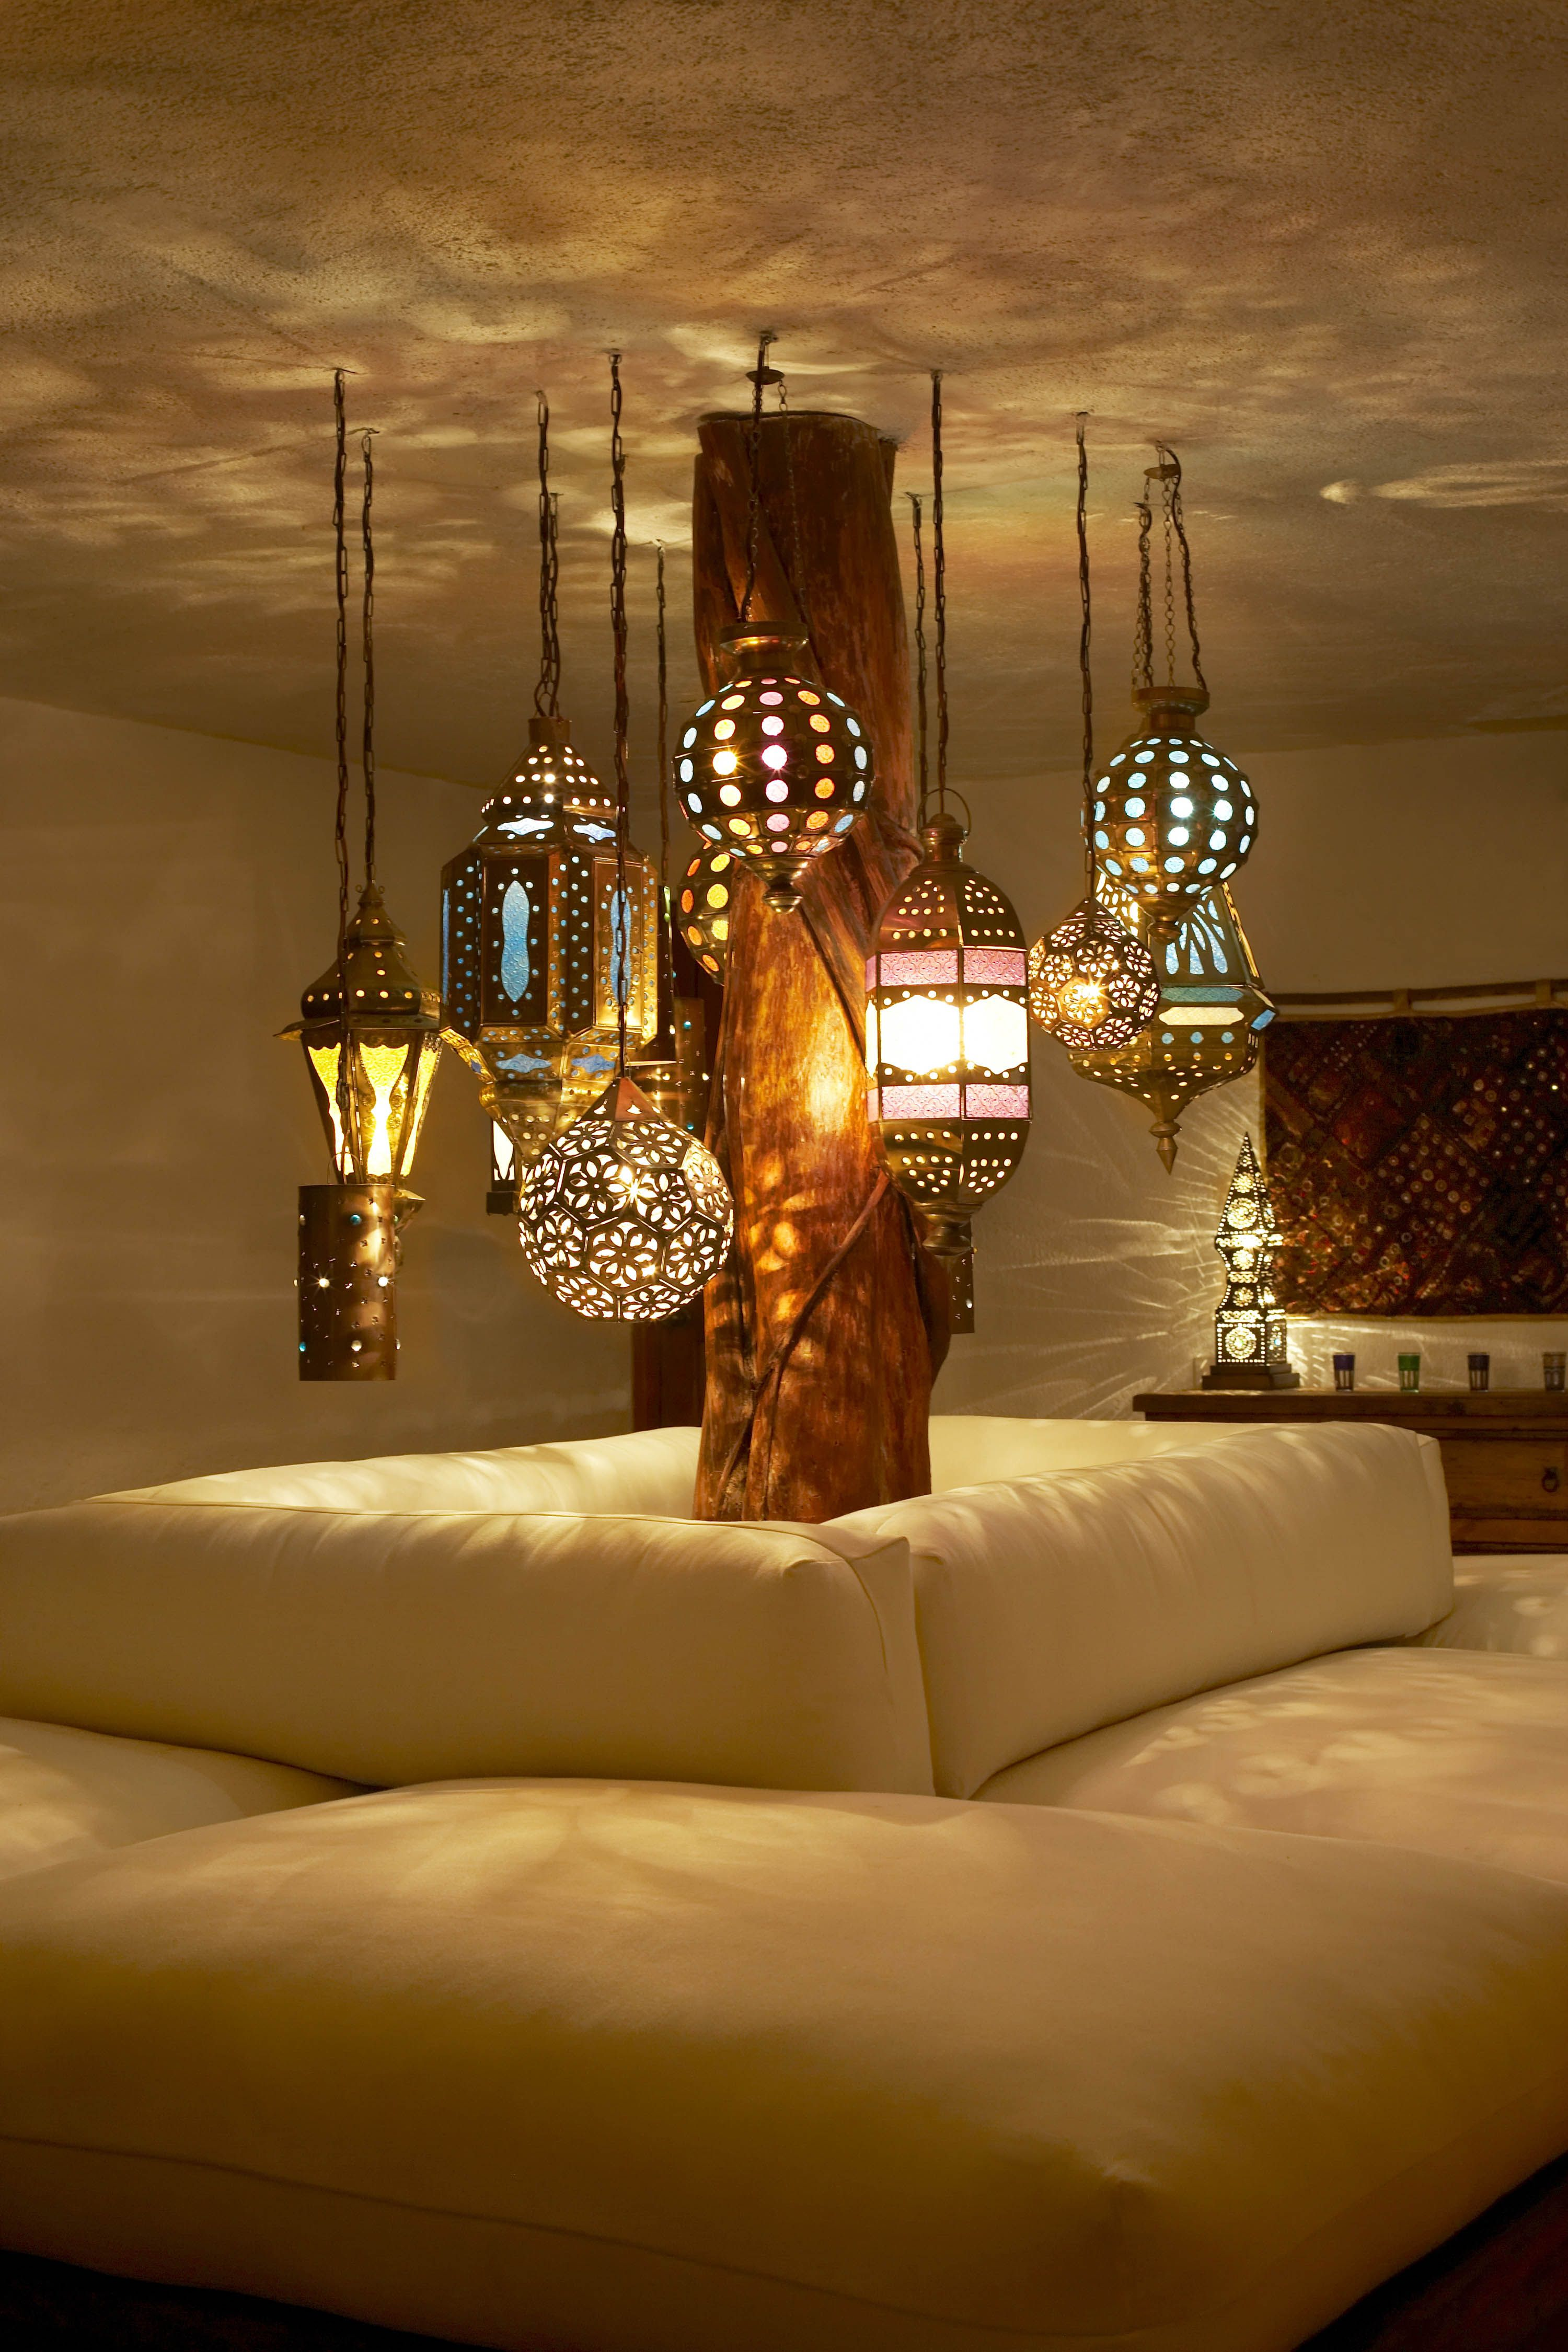 Patterned Lamps Add Touch Of Whimsy To The Lighting In The Spa At ... for Moroccan Lamp Photography  155fiz